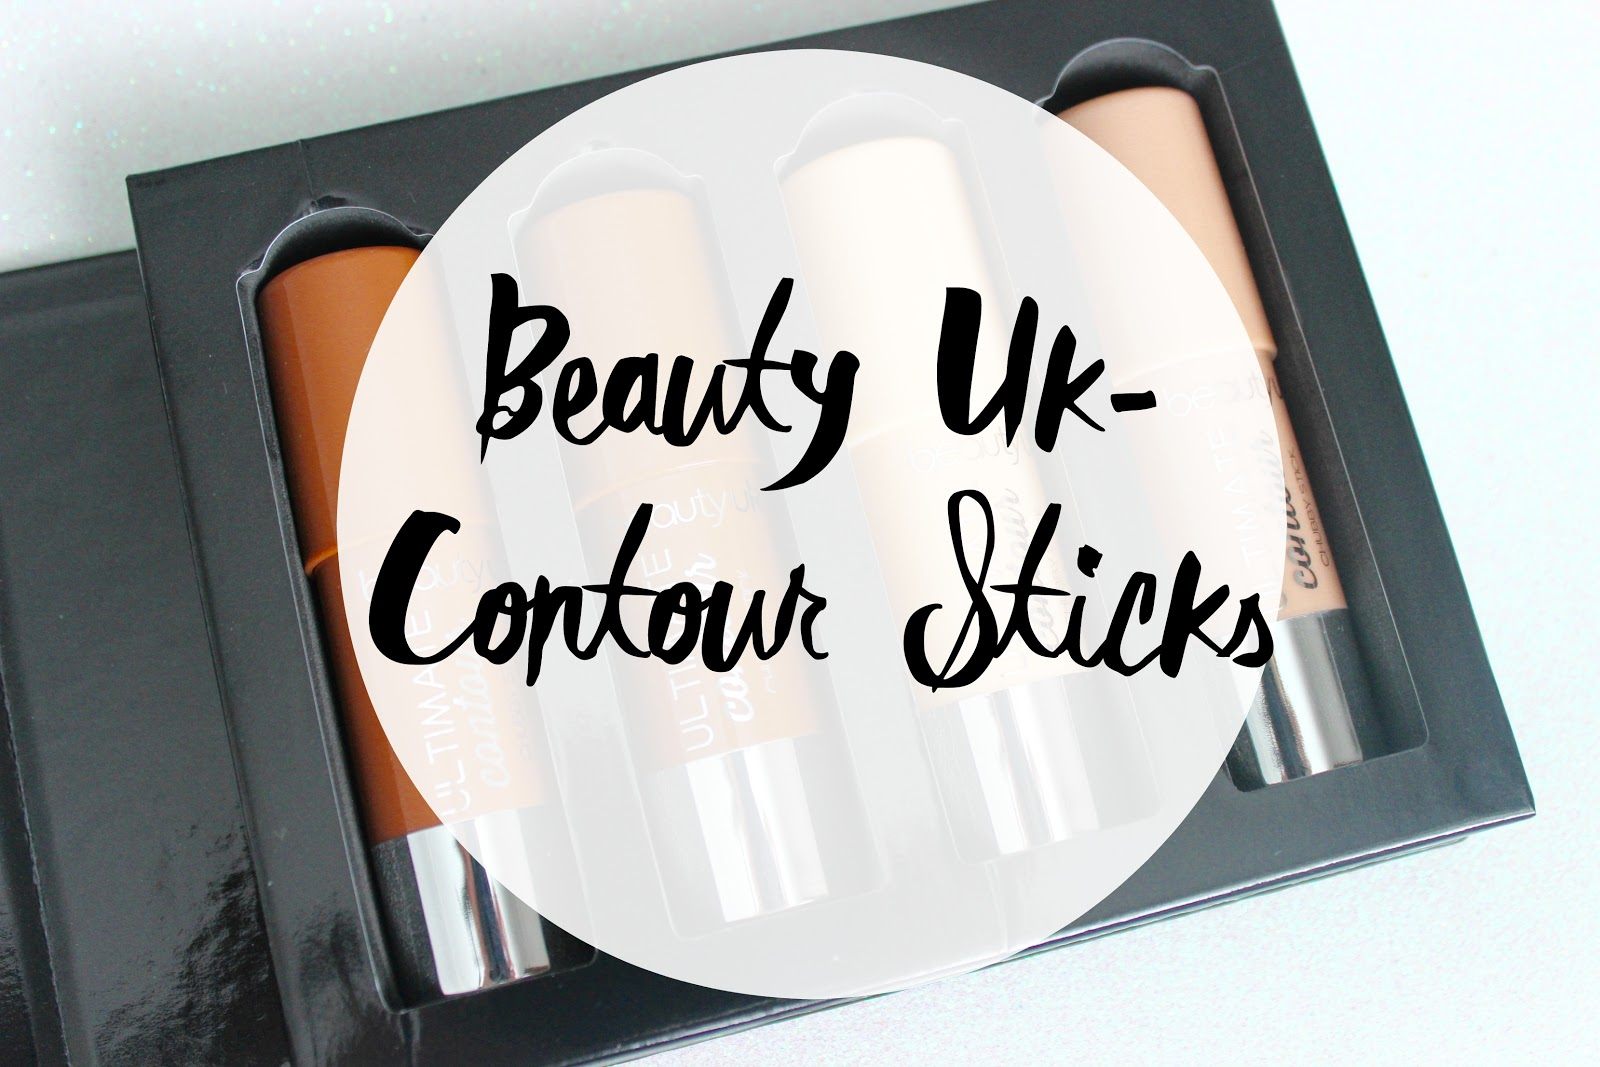 beautyuk, contour sticks, chubby sticks, medium contour, dark contour, shimmer highlight, beige highlight